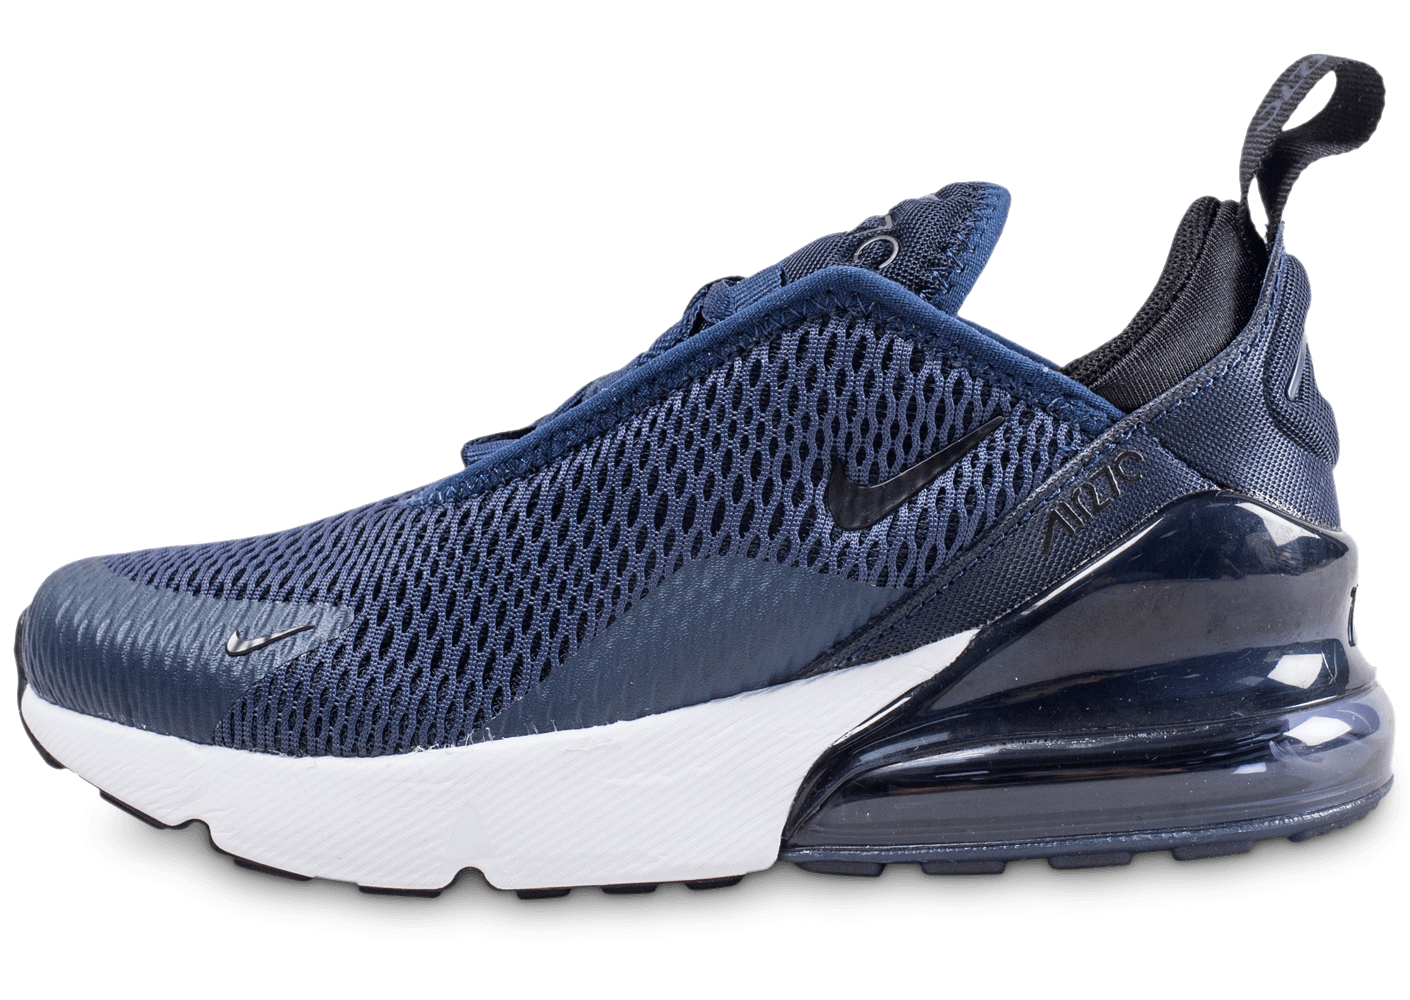 Nike Air Max 270 Enfant Bleu Marine Baskets/Basket/Baskets Enfant jdb0Aa